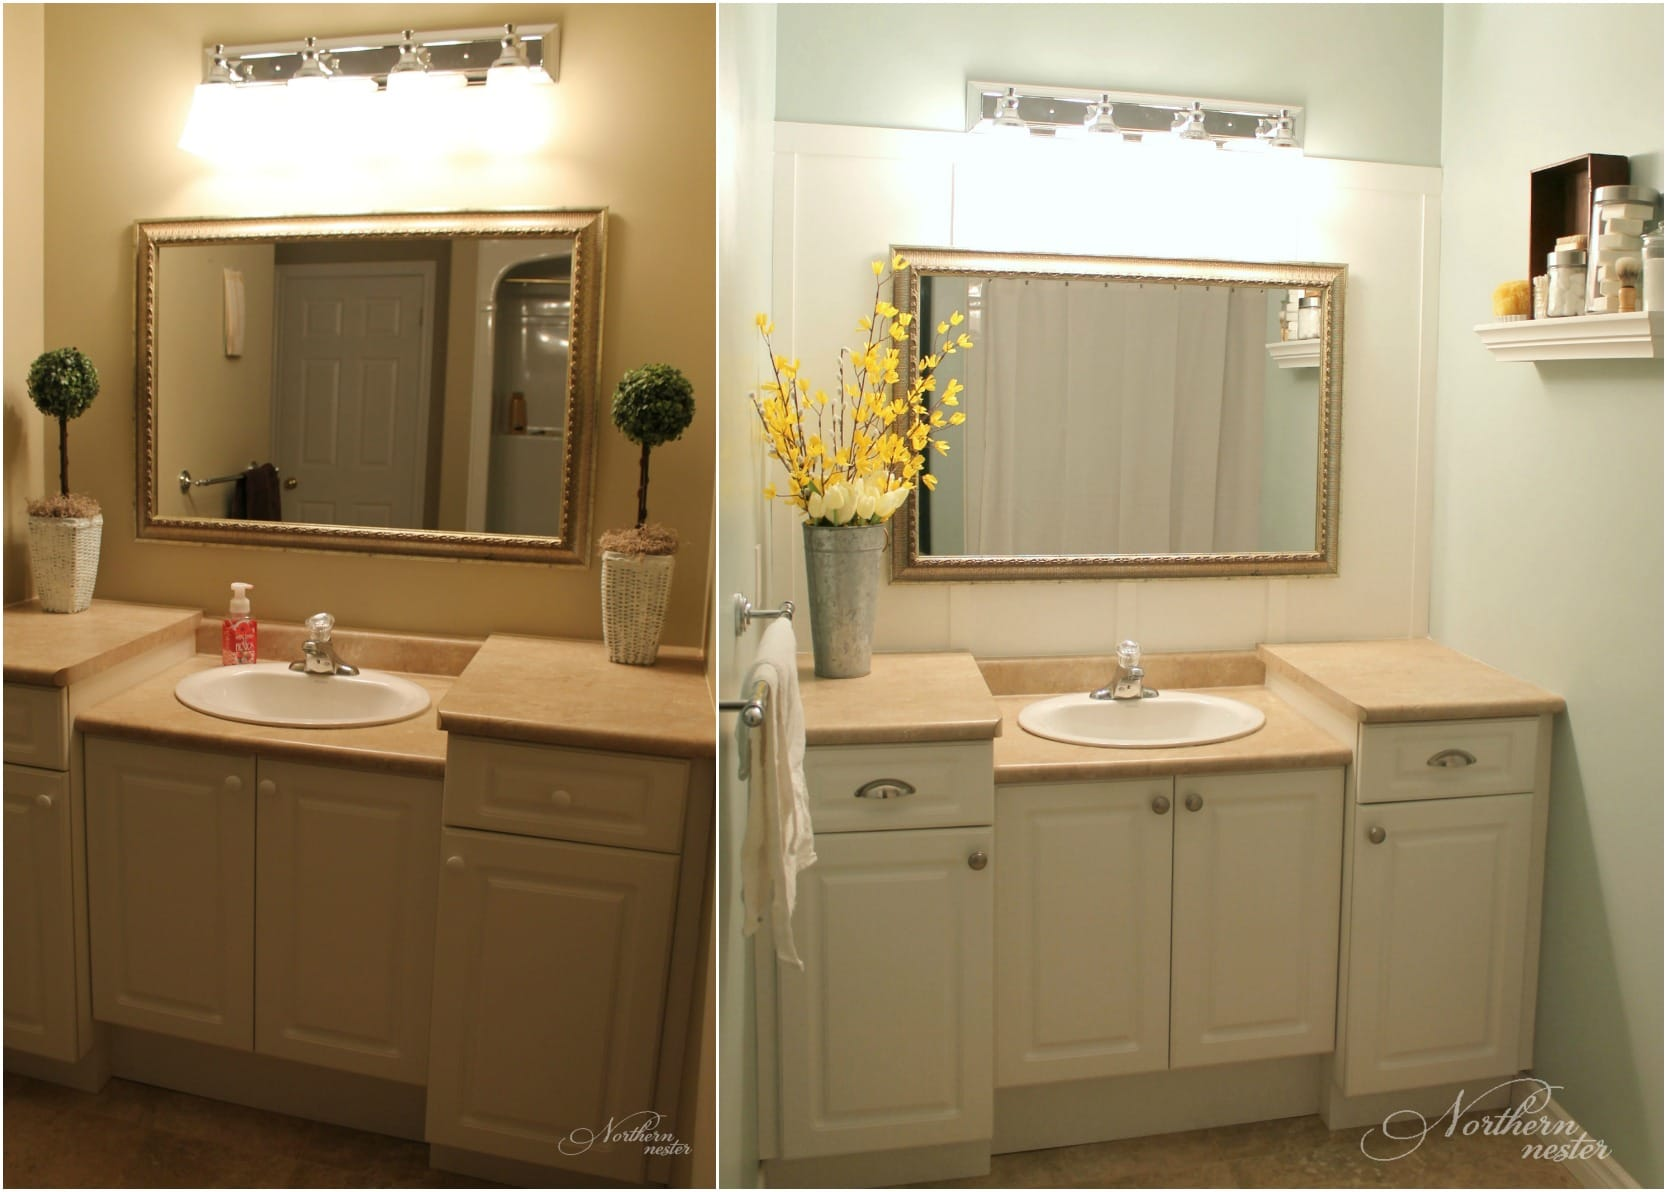 Main Bathroom Before Amp After Northern Nester